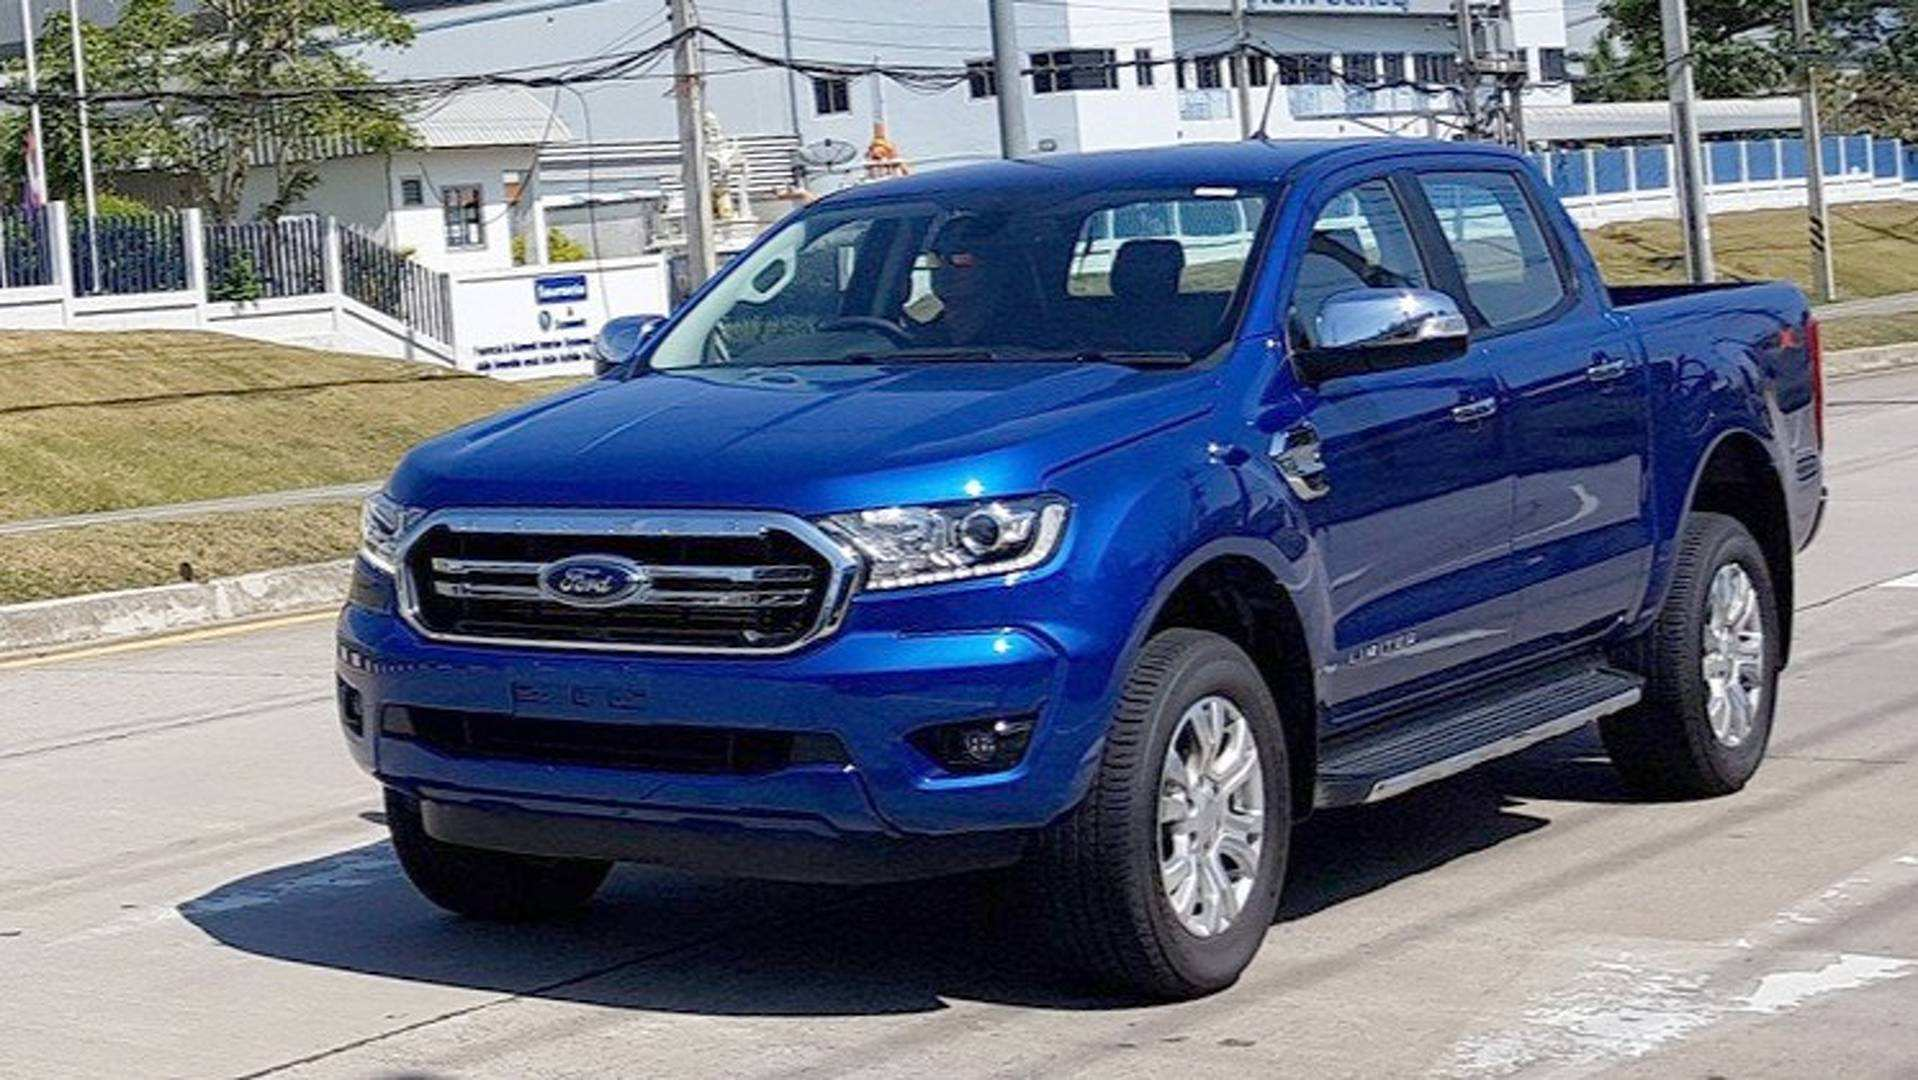 72 The 2019 Ford Ranger New Model And Performance